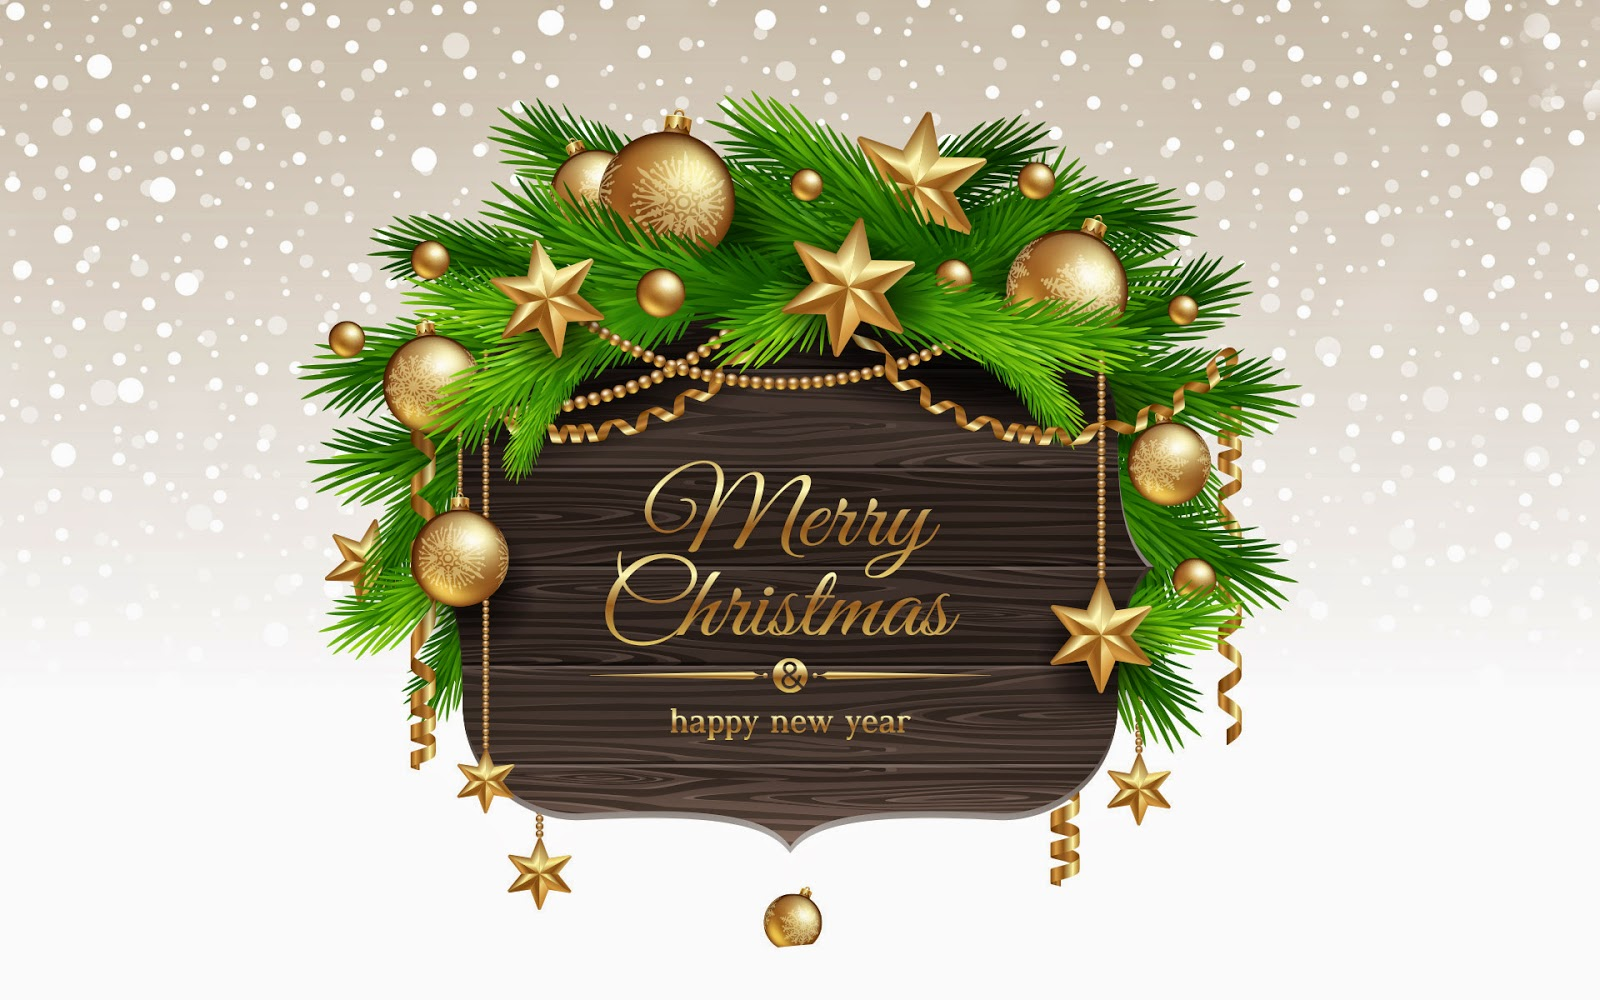 merry-Christmas-and-happy-new-year-vector-graphics-template-card.jpg